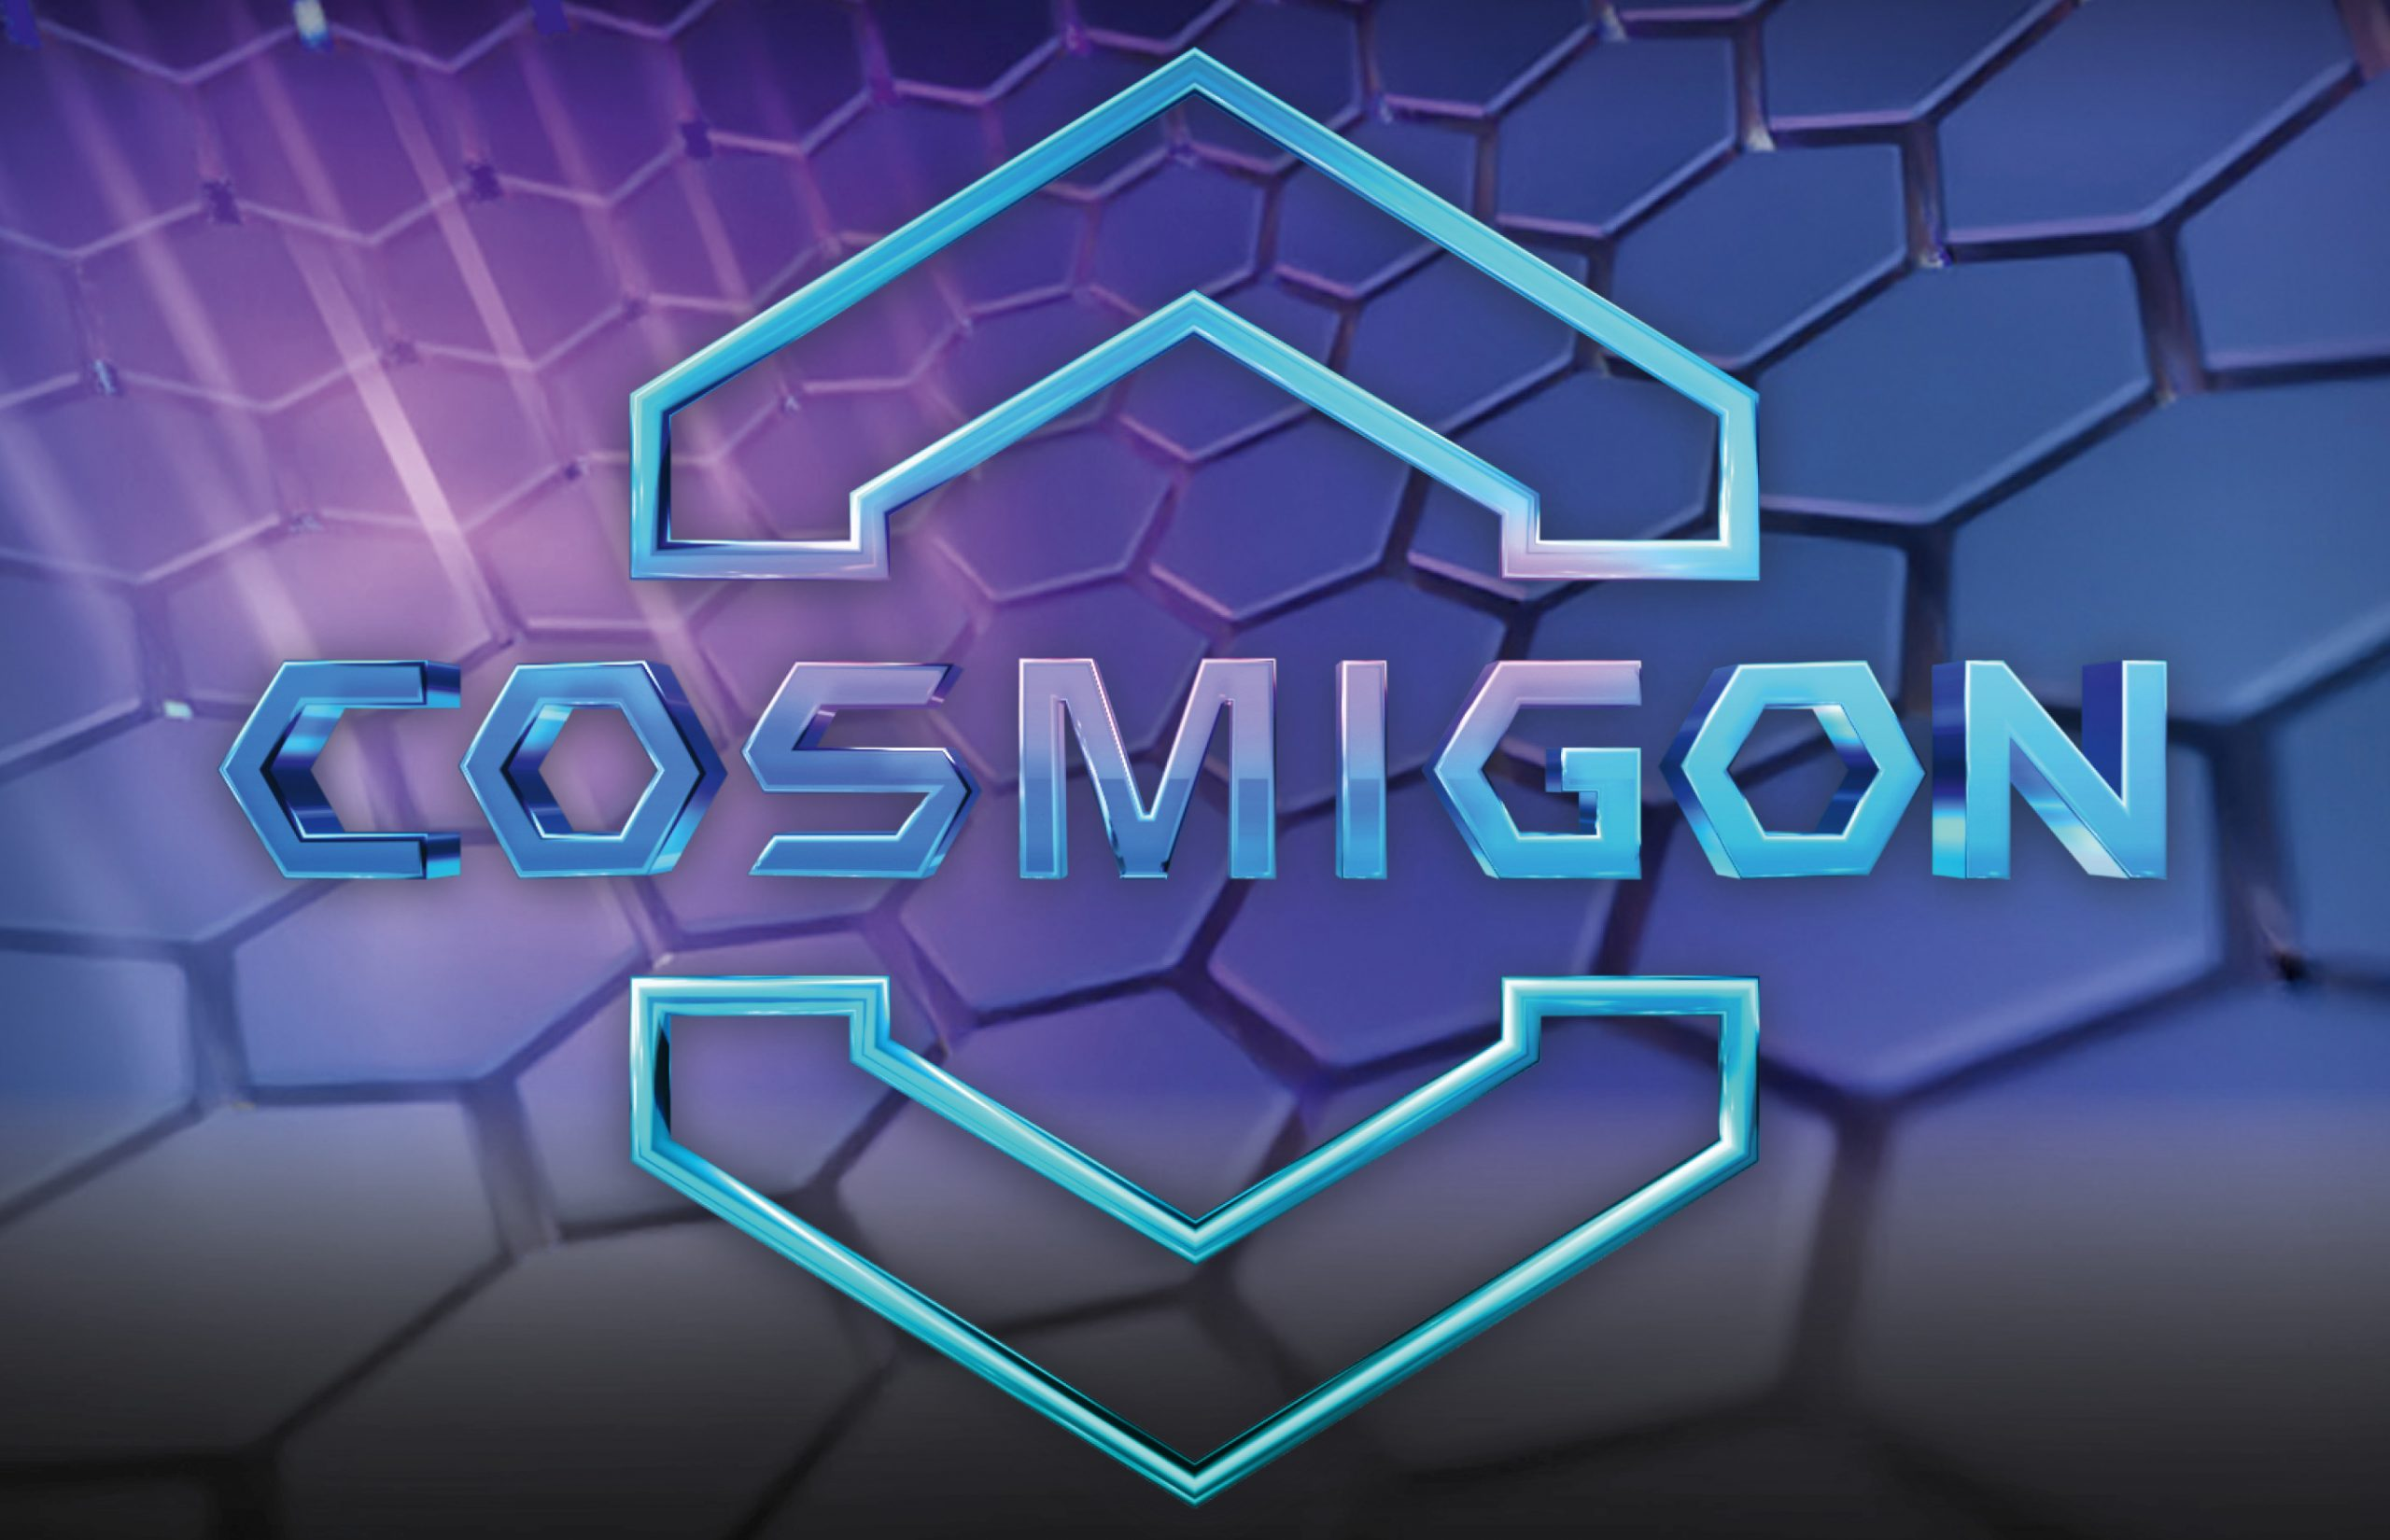 Cosmigon is an innovative dice game from Air Dice that can be played on betFIRST Casino